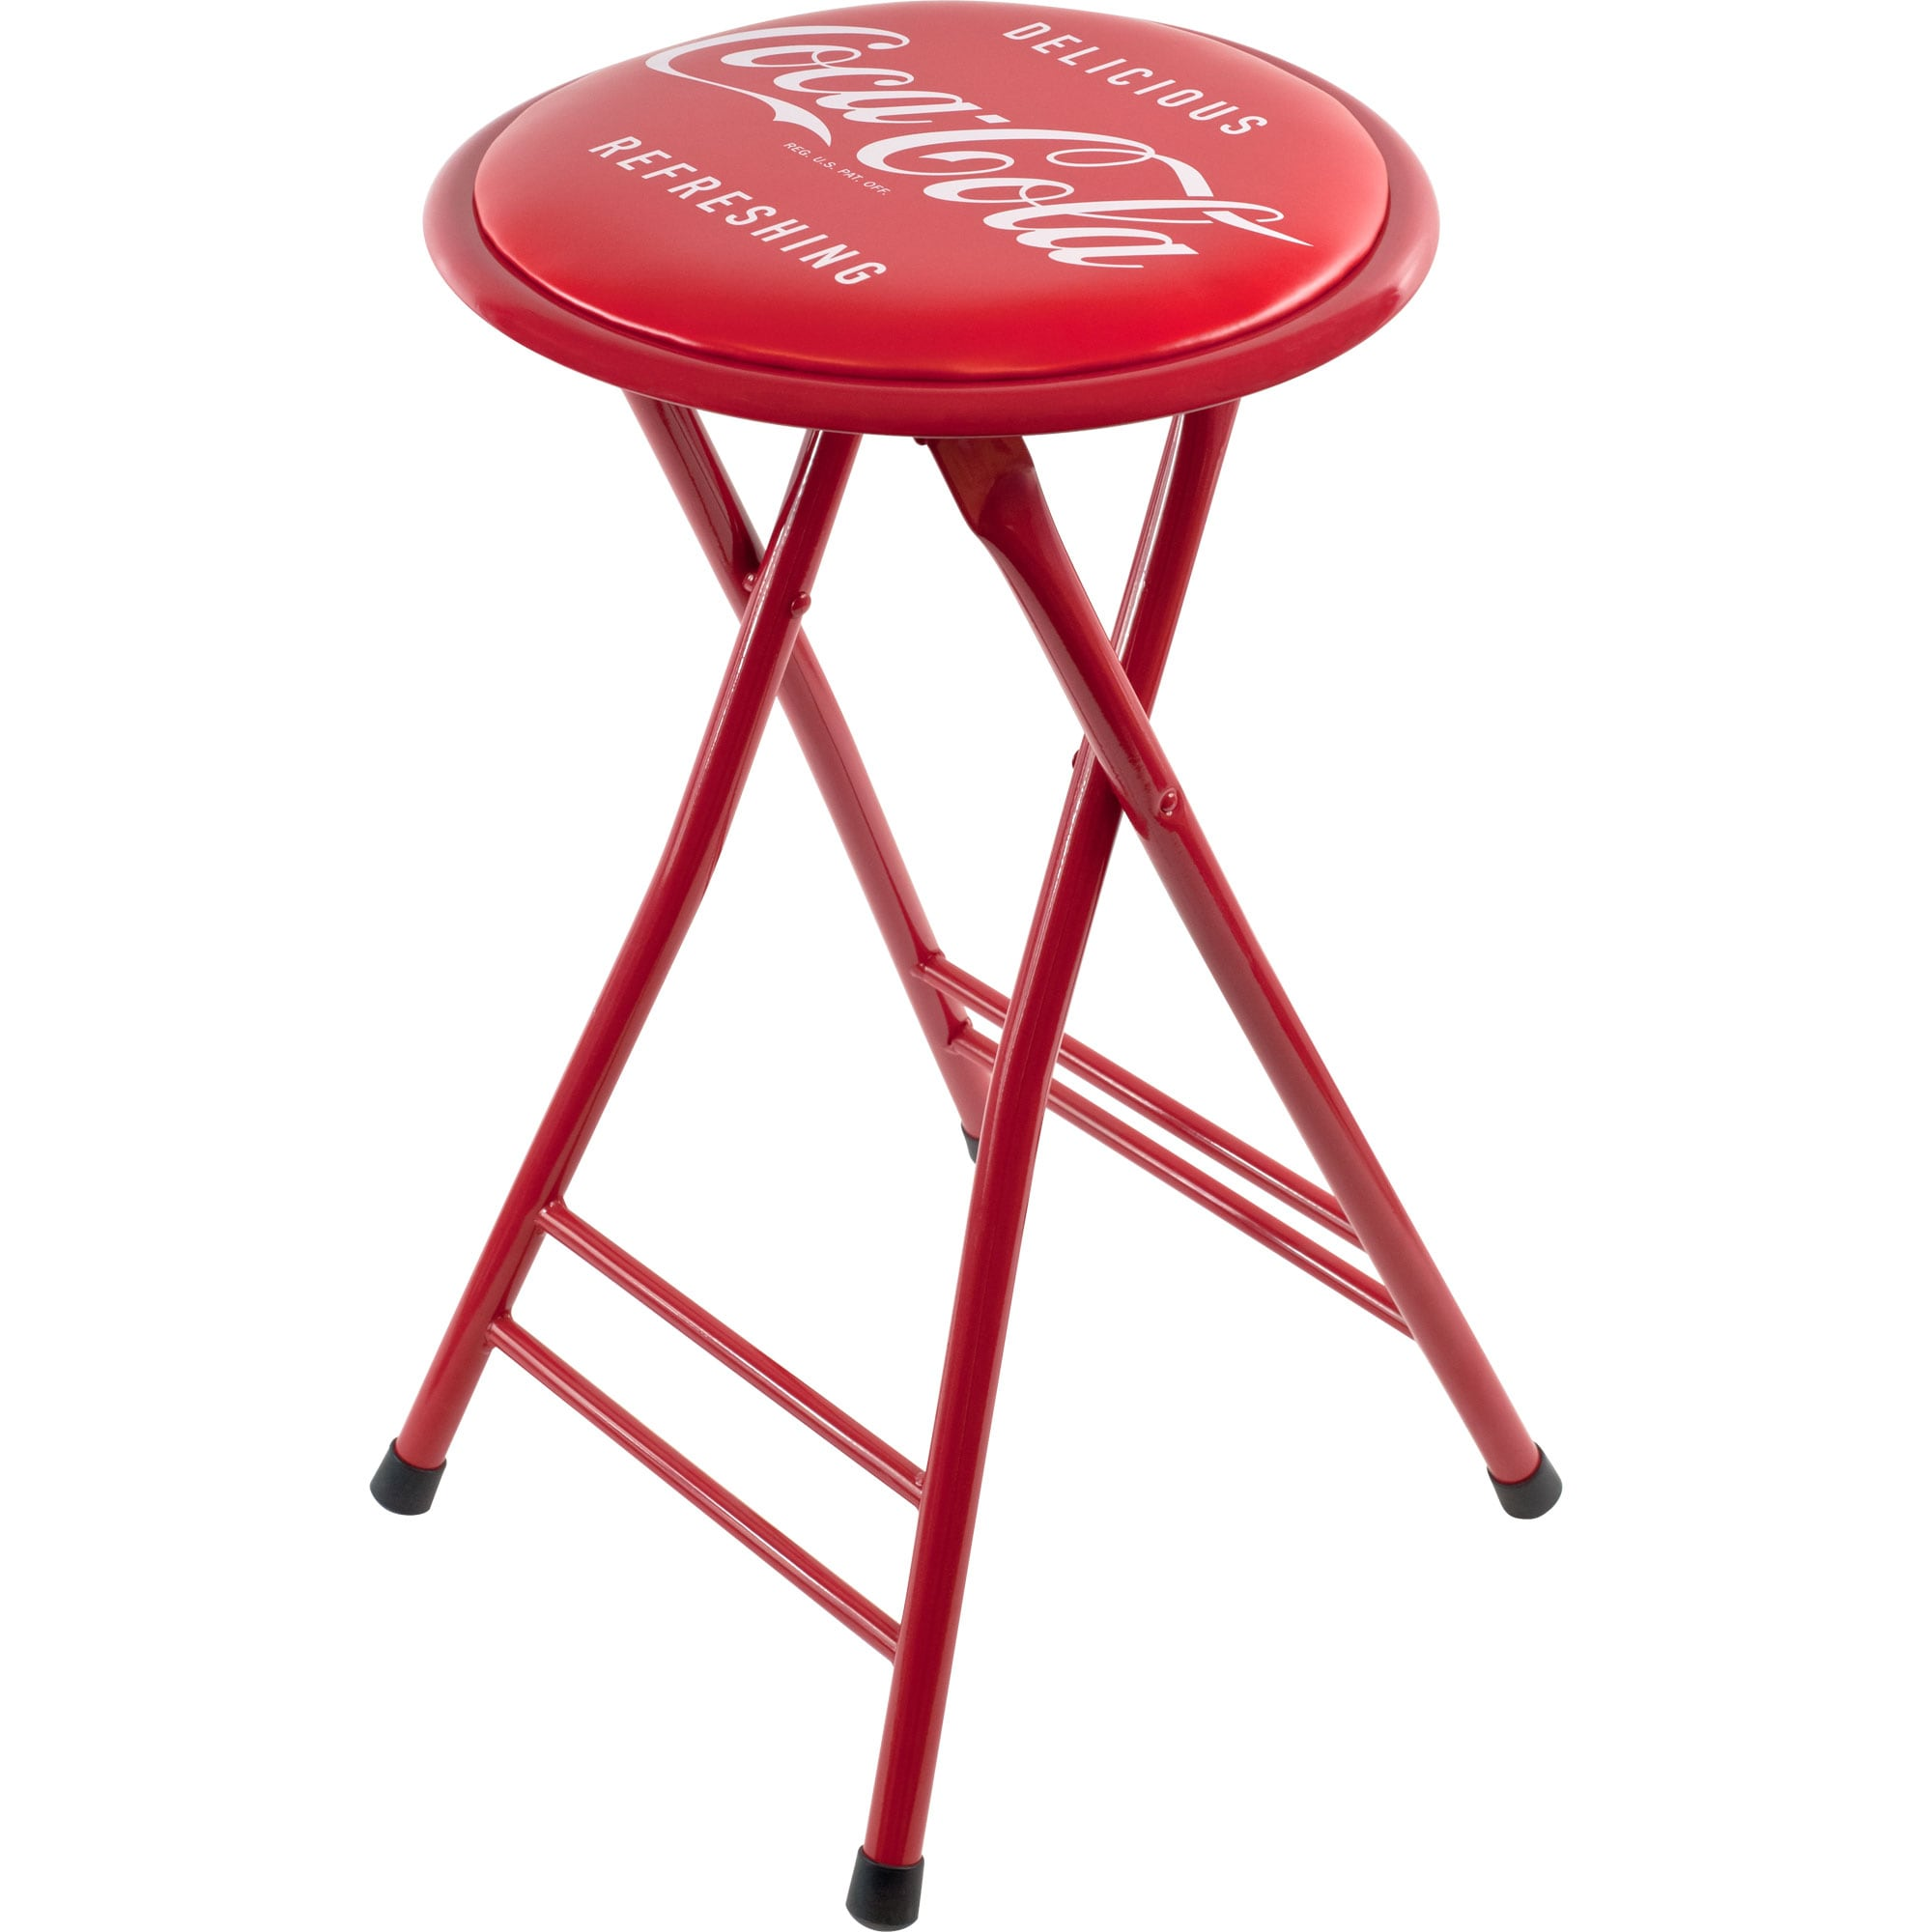 Shop Coca Cola 24 Inch Red Folding Stool With Coke Logo